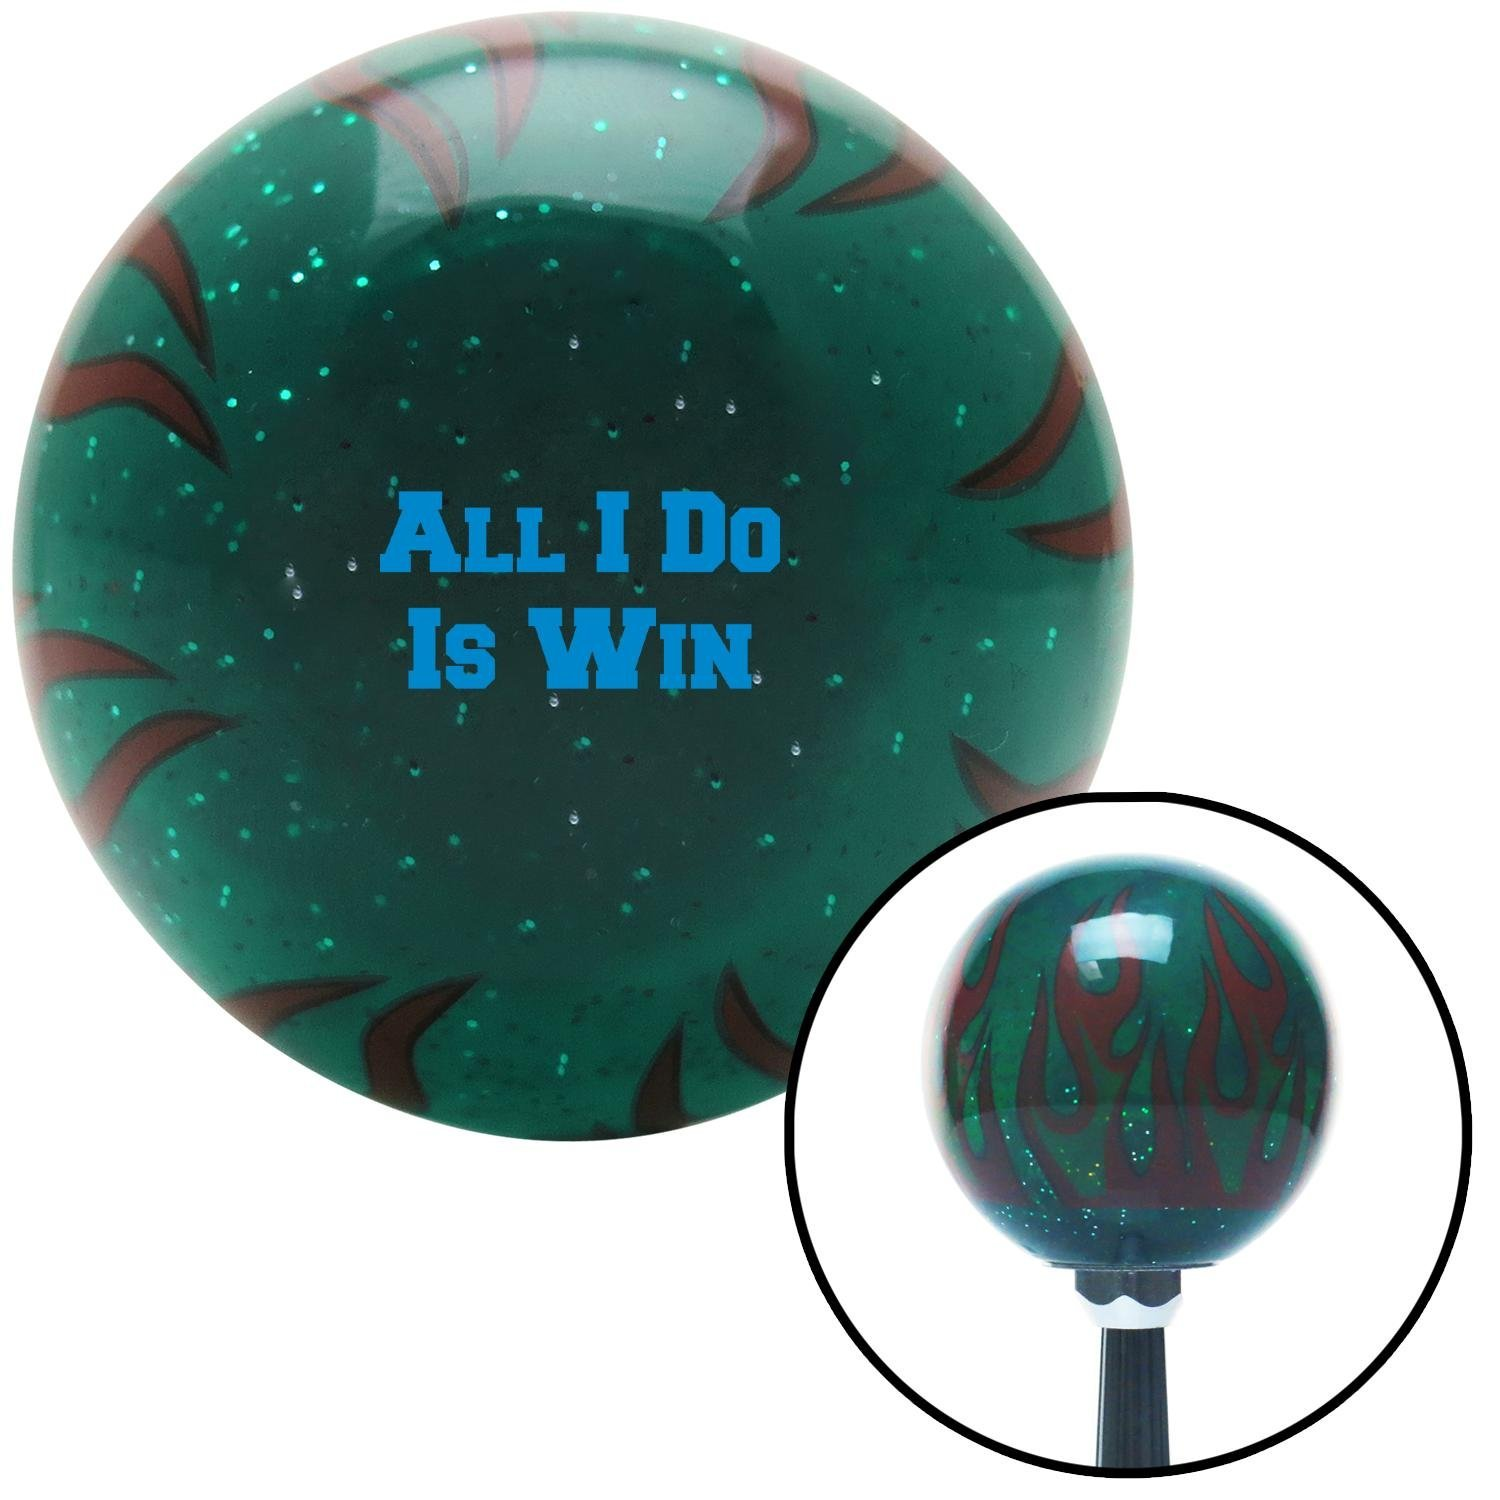 American Shifter 300175 Shift Knob Blue All I Do is Win Green Flame Metal Flake with M16 x 1.5 Insert